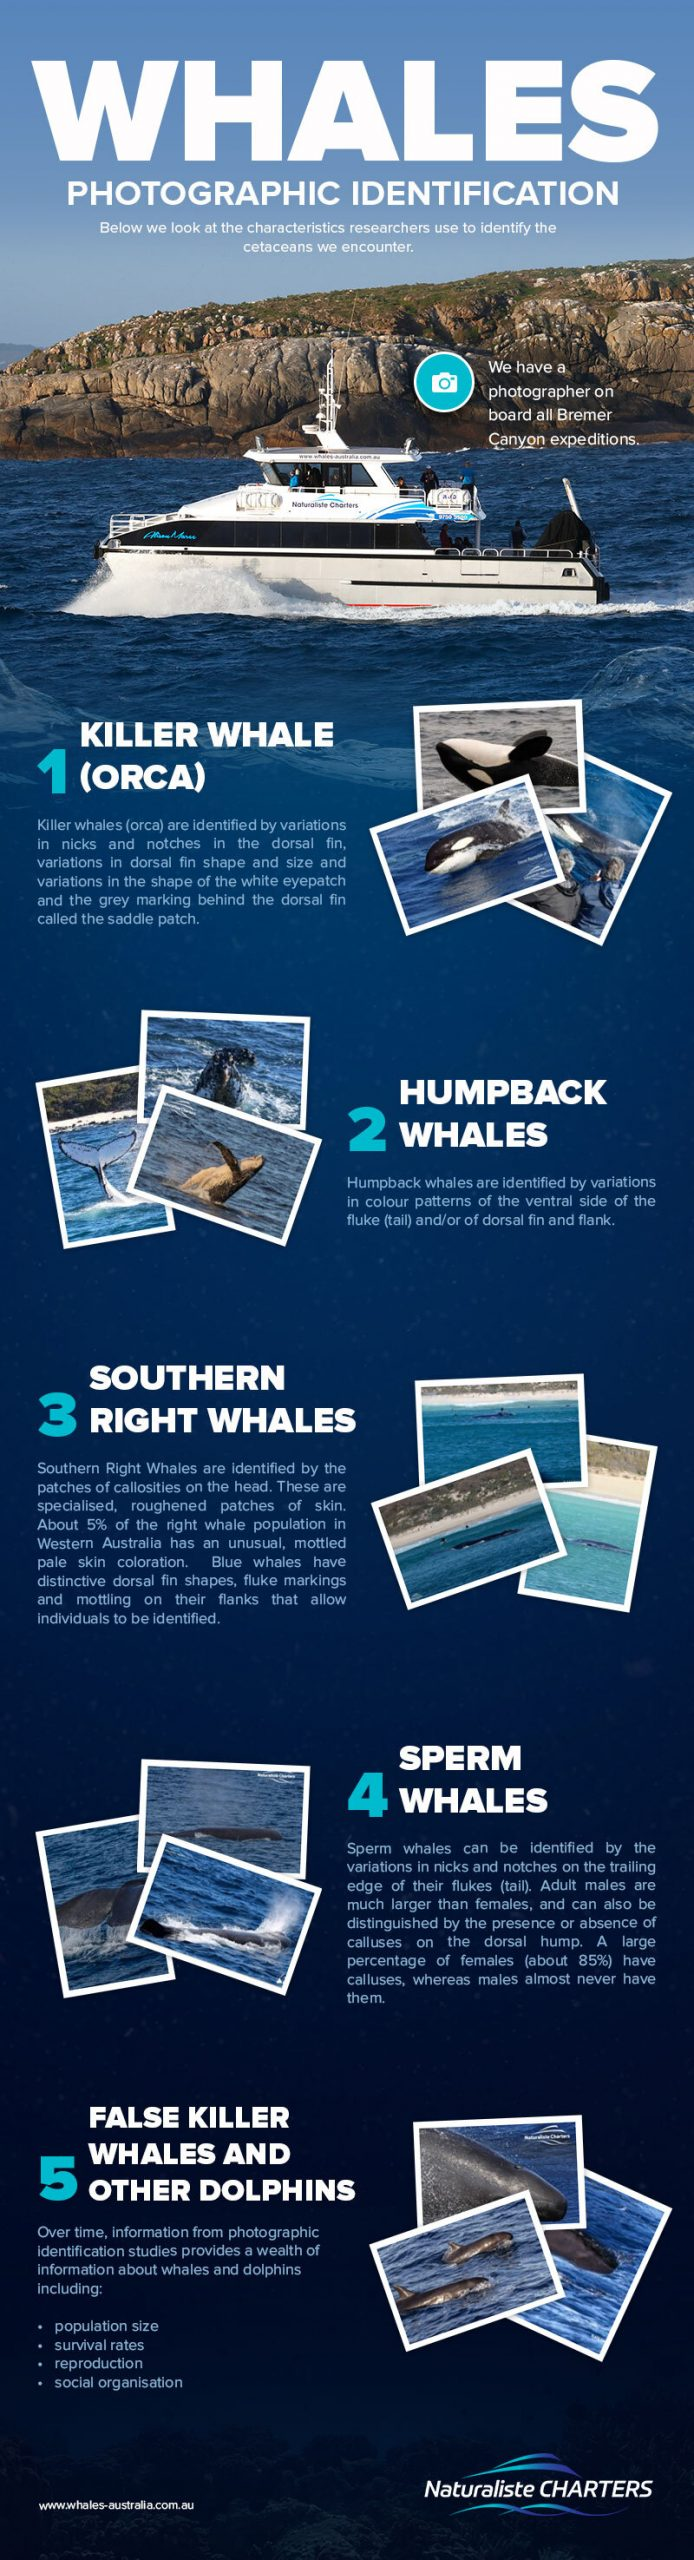 NC Whales Photographic Identification Infographic Scaled